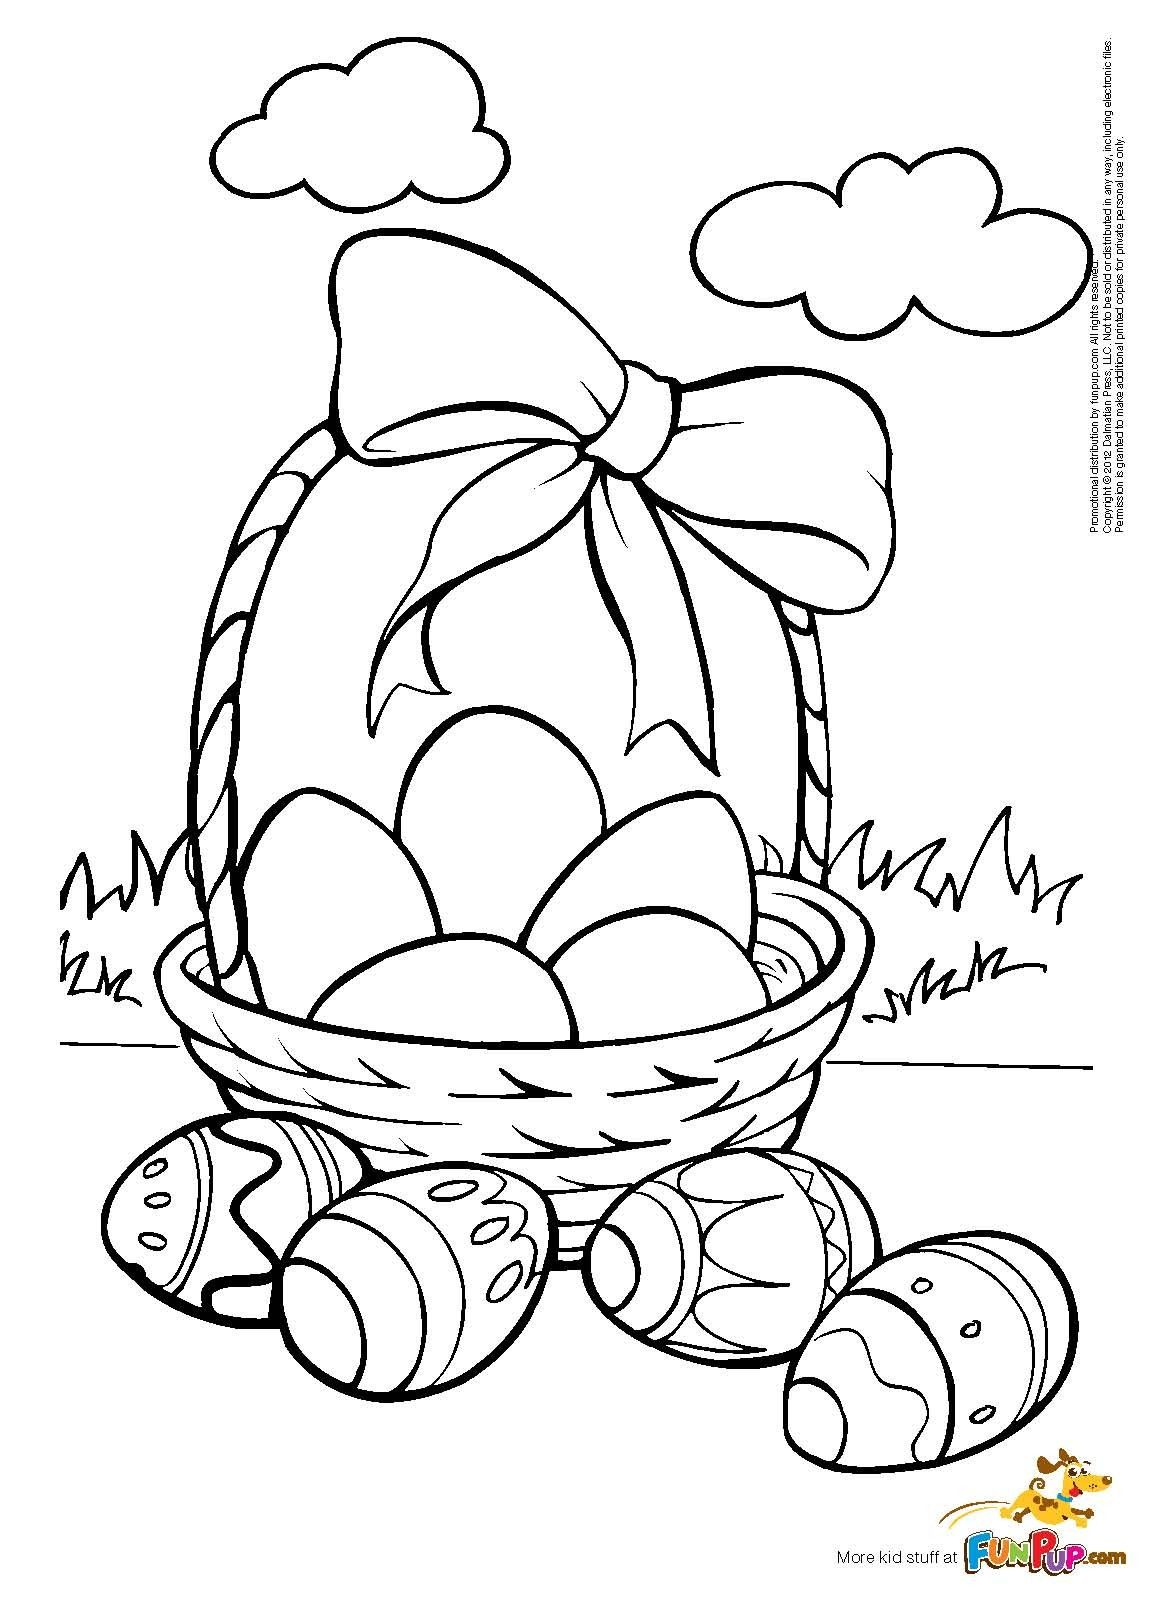 Easter Eggs Coloring Page Free Printable Coloring Pages